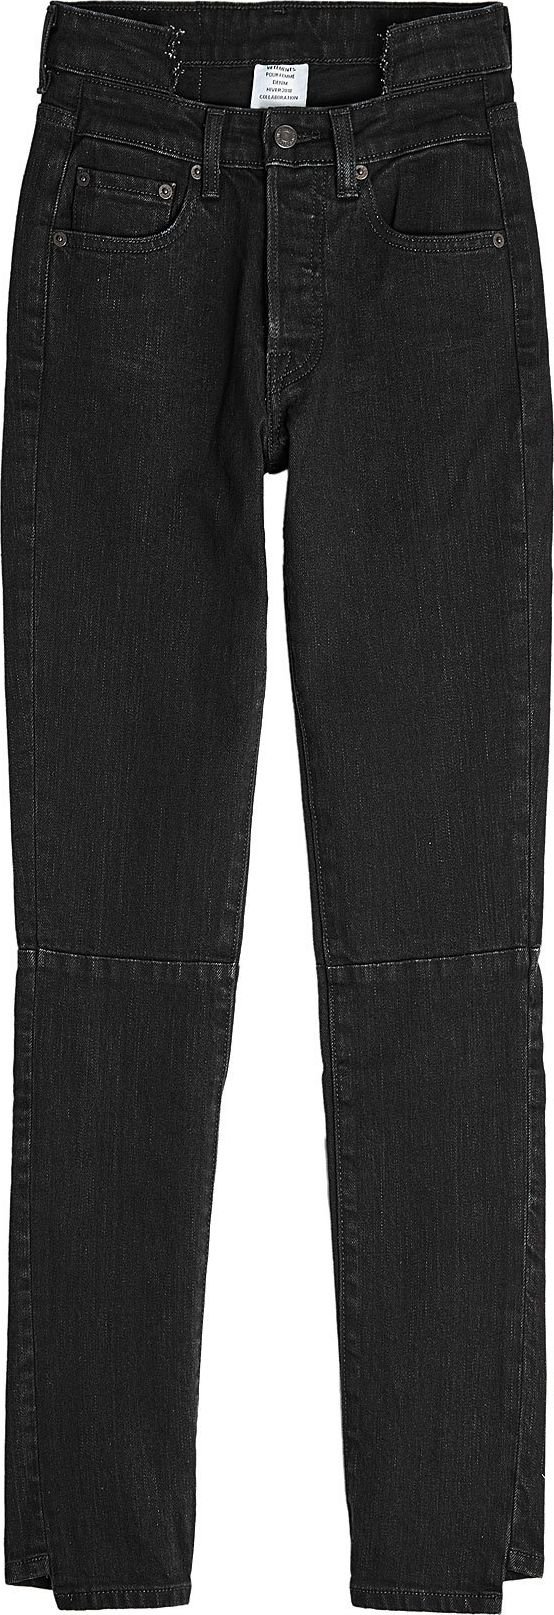 Vetements - Deconstructed Skinny Jeans